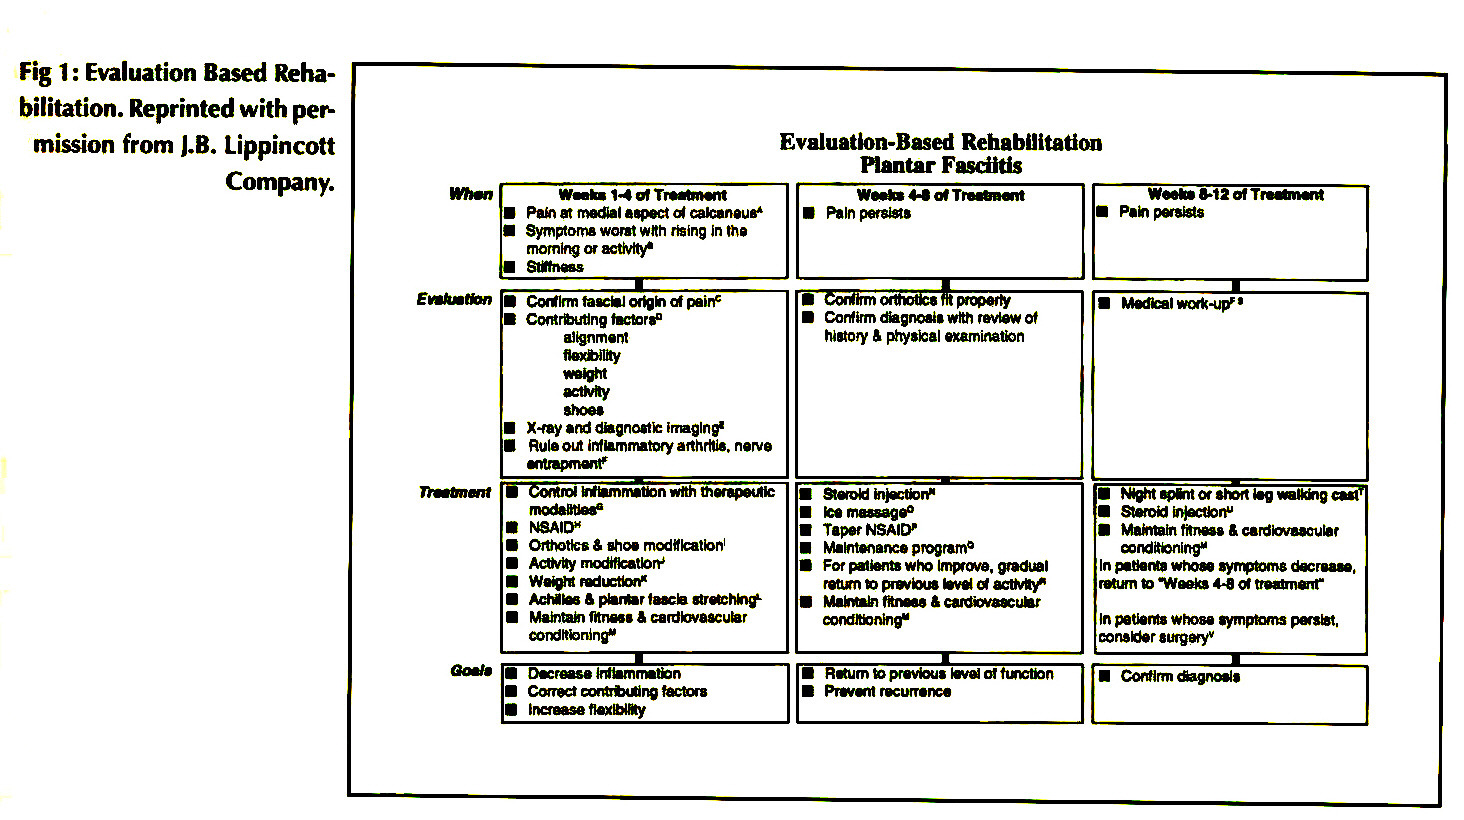 Fig 1 : Evaluation Based Rehabilitation. Reprinted with permission from L.B. Lippincott Company.